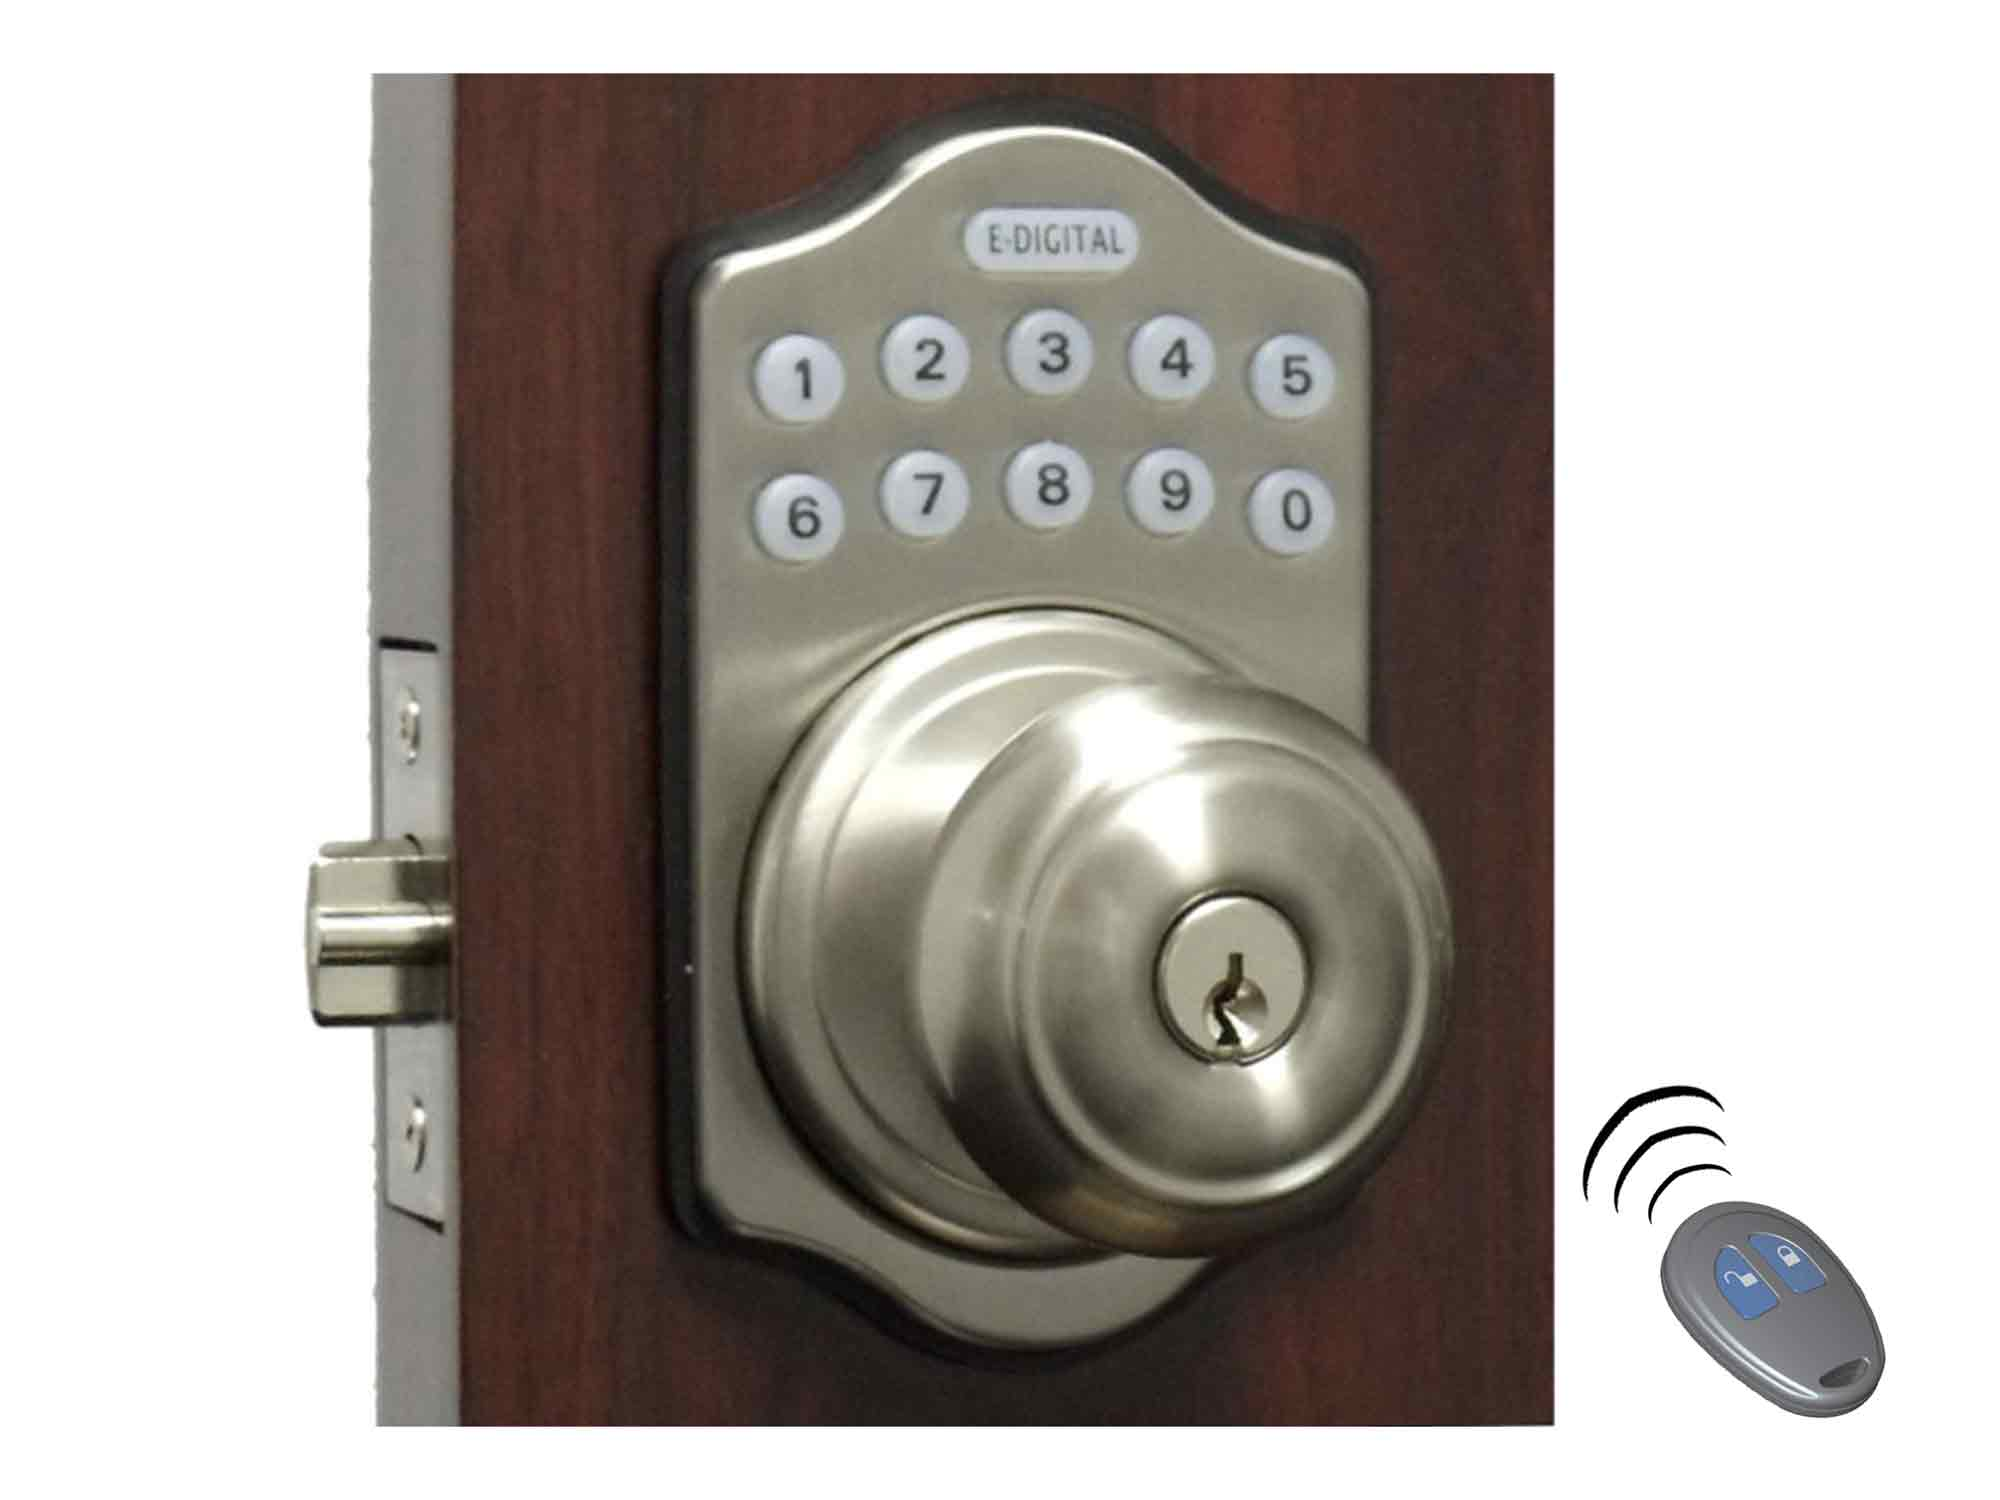 Lockey E930 Electronic Knob-Handle Latchbolt Lock (E-Digital)